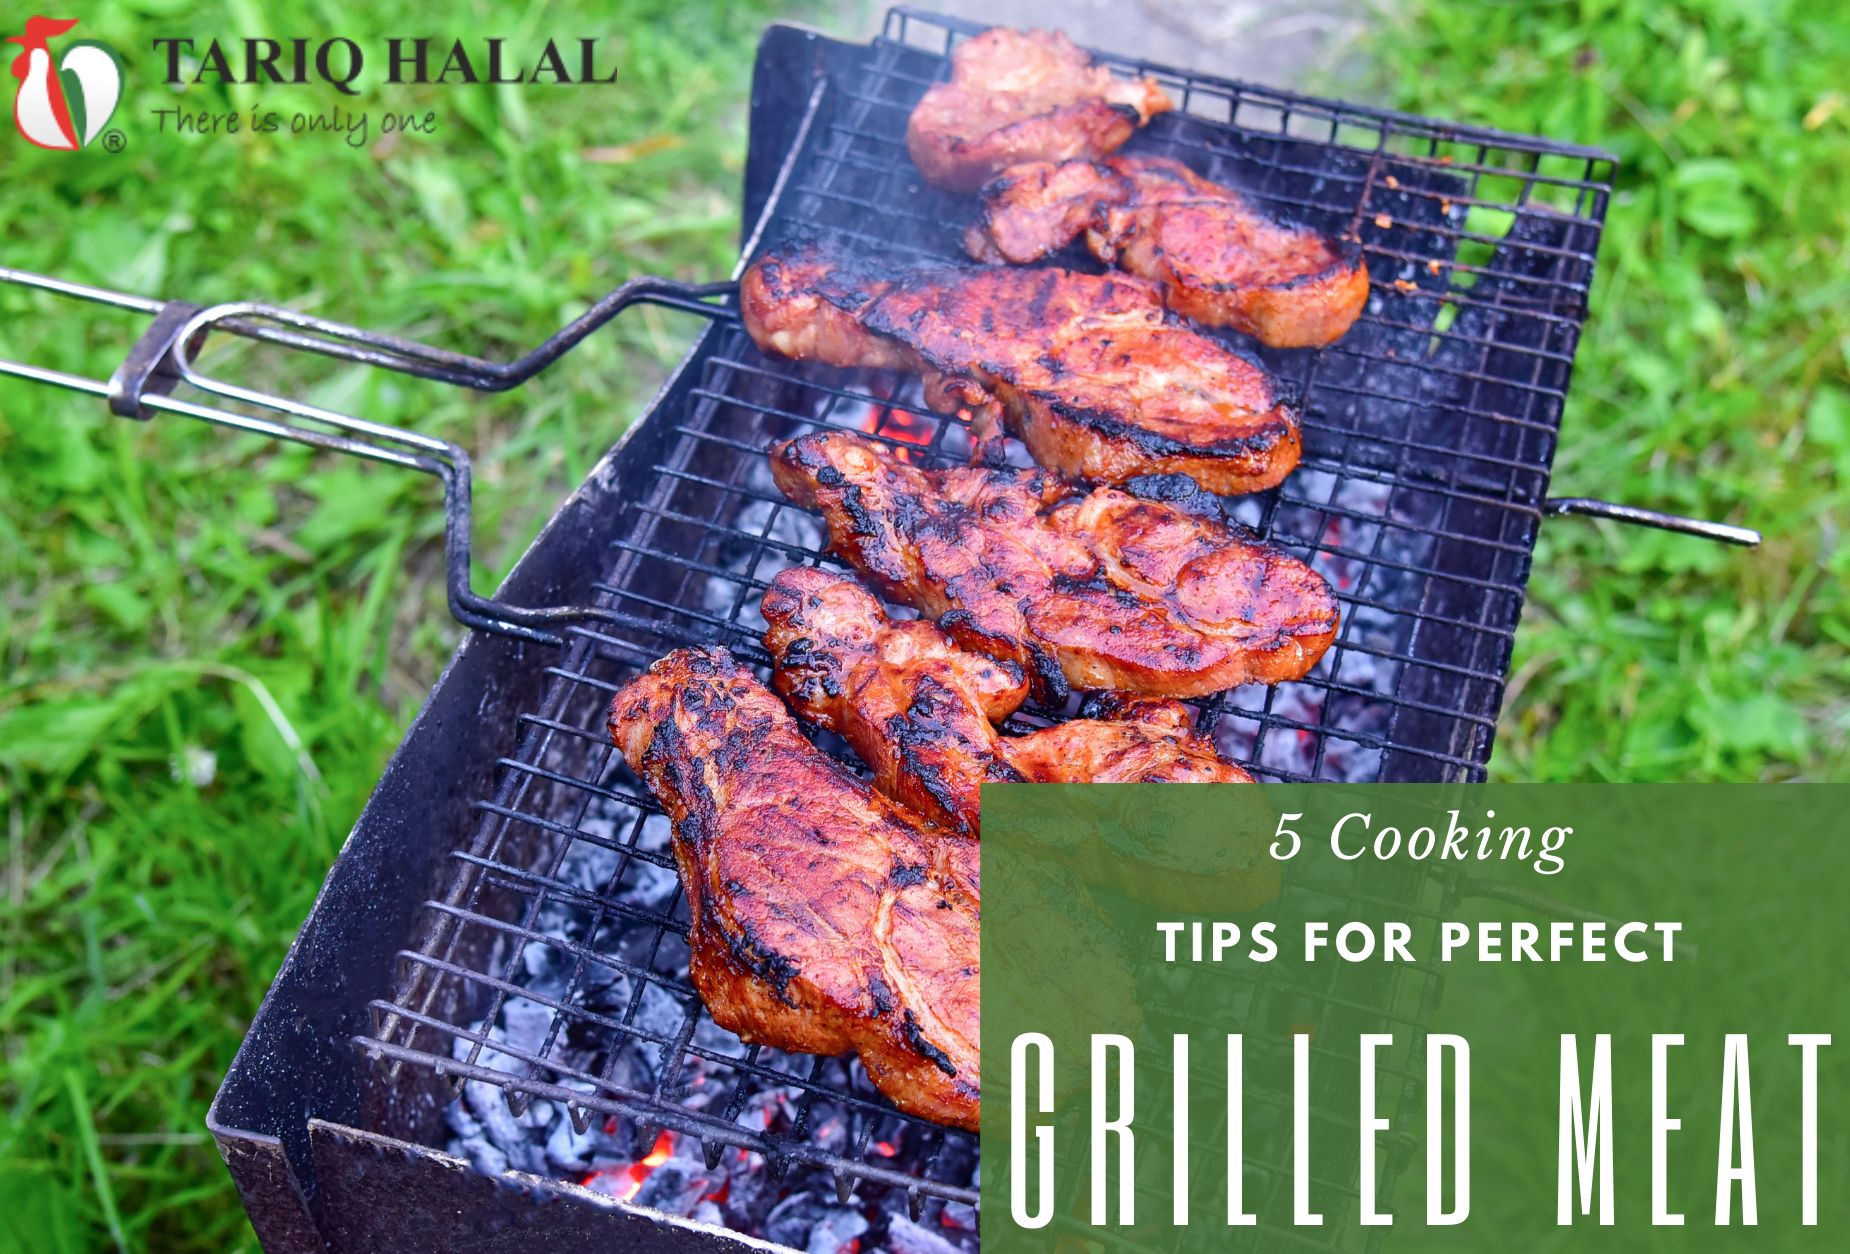 5 Cooking Tips for Perfect Grilled Meat